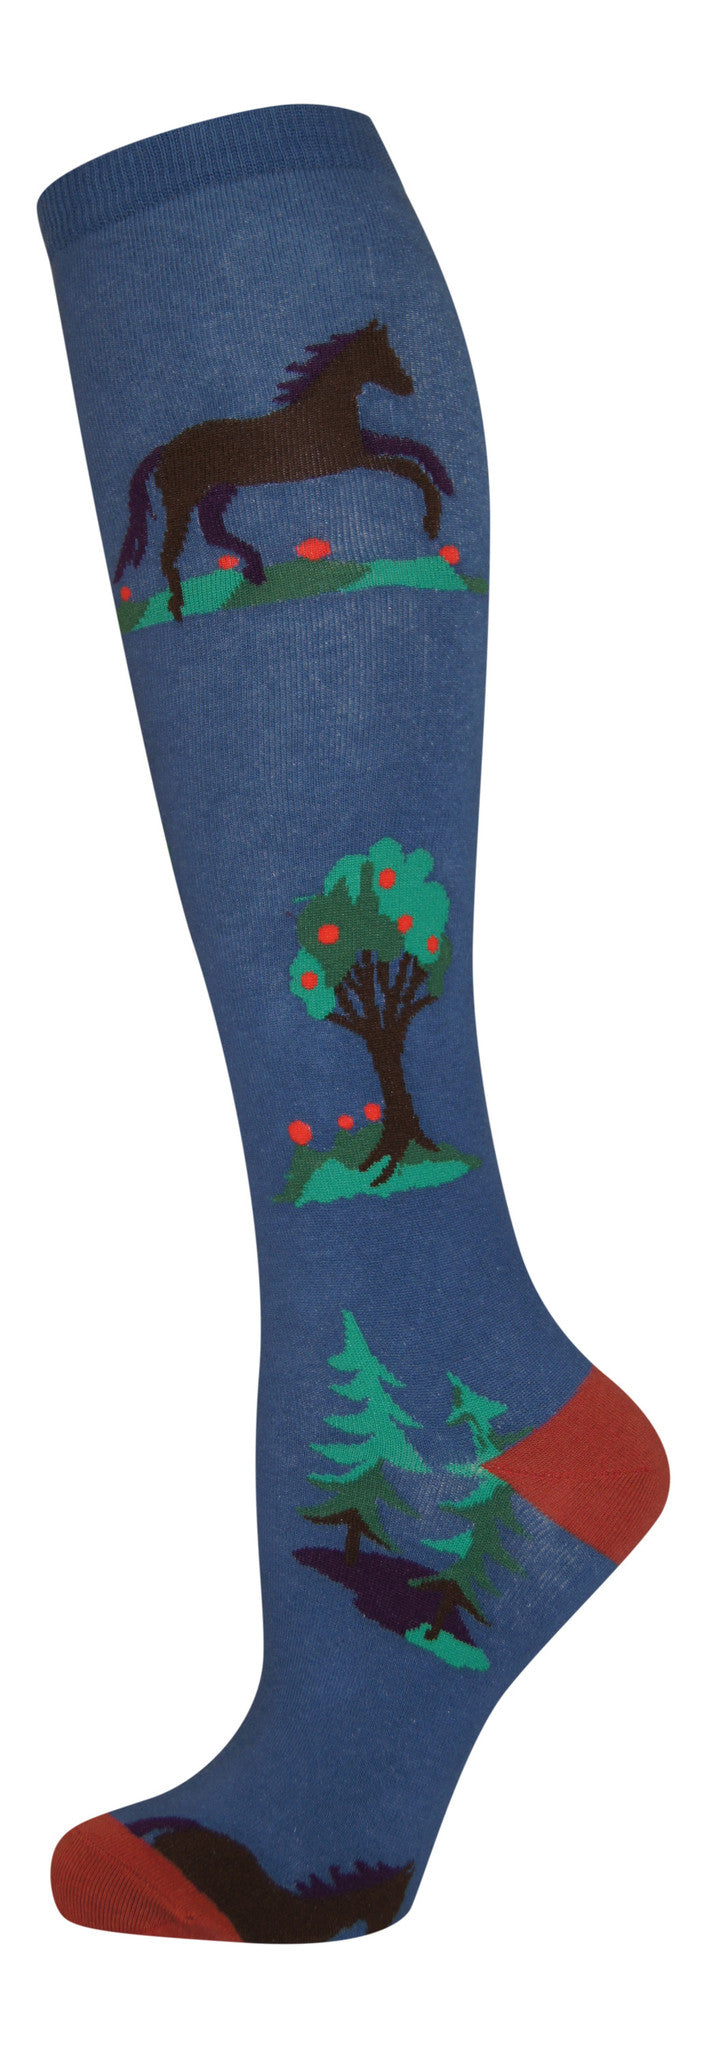 """Horses & Trees"" cotton-rich knee sock from lucky7socks.com"